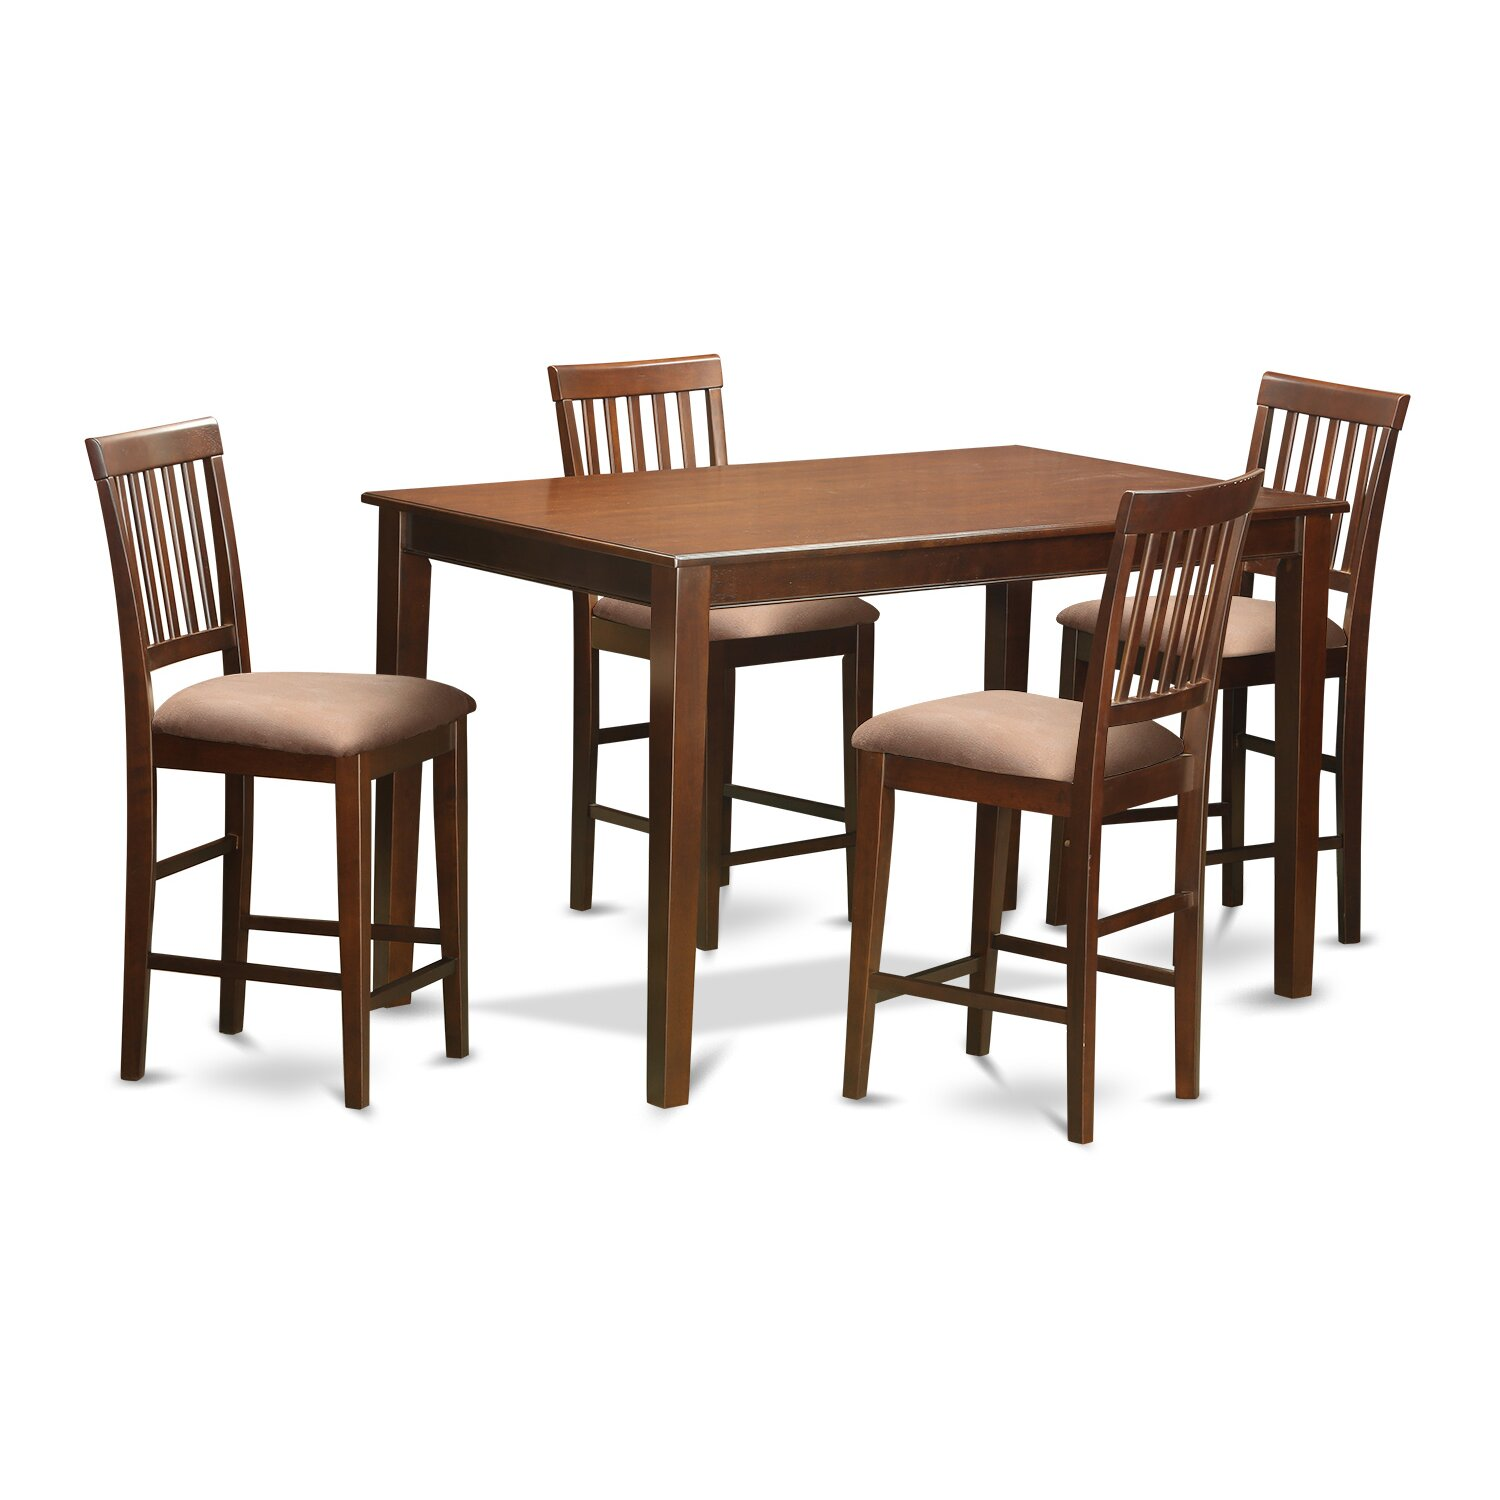 Wooden importers 5 piece counter height dining set wayfair for 4 piece dining table set